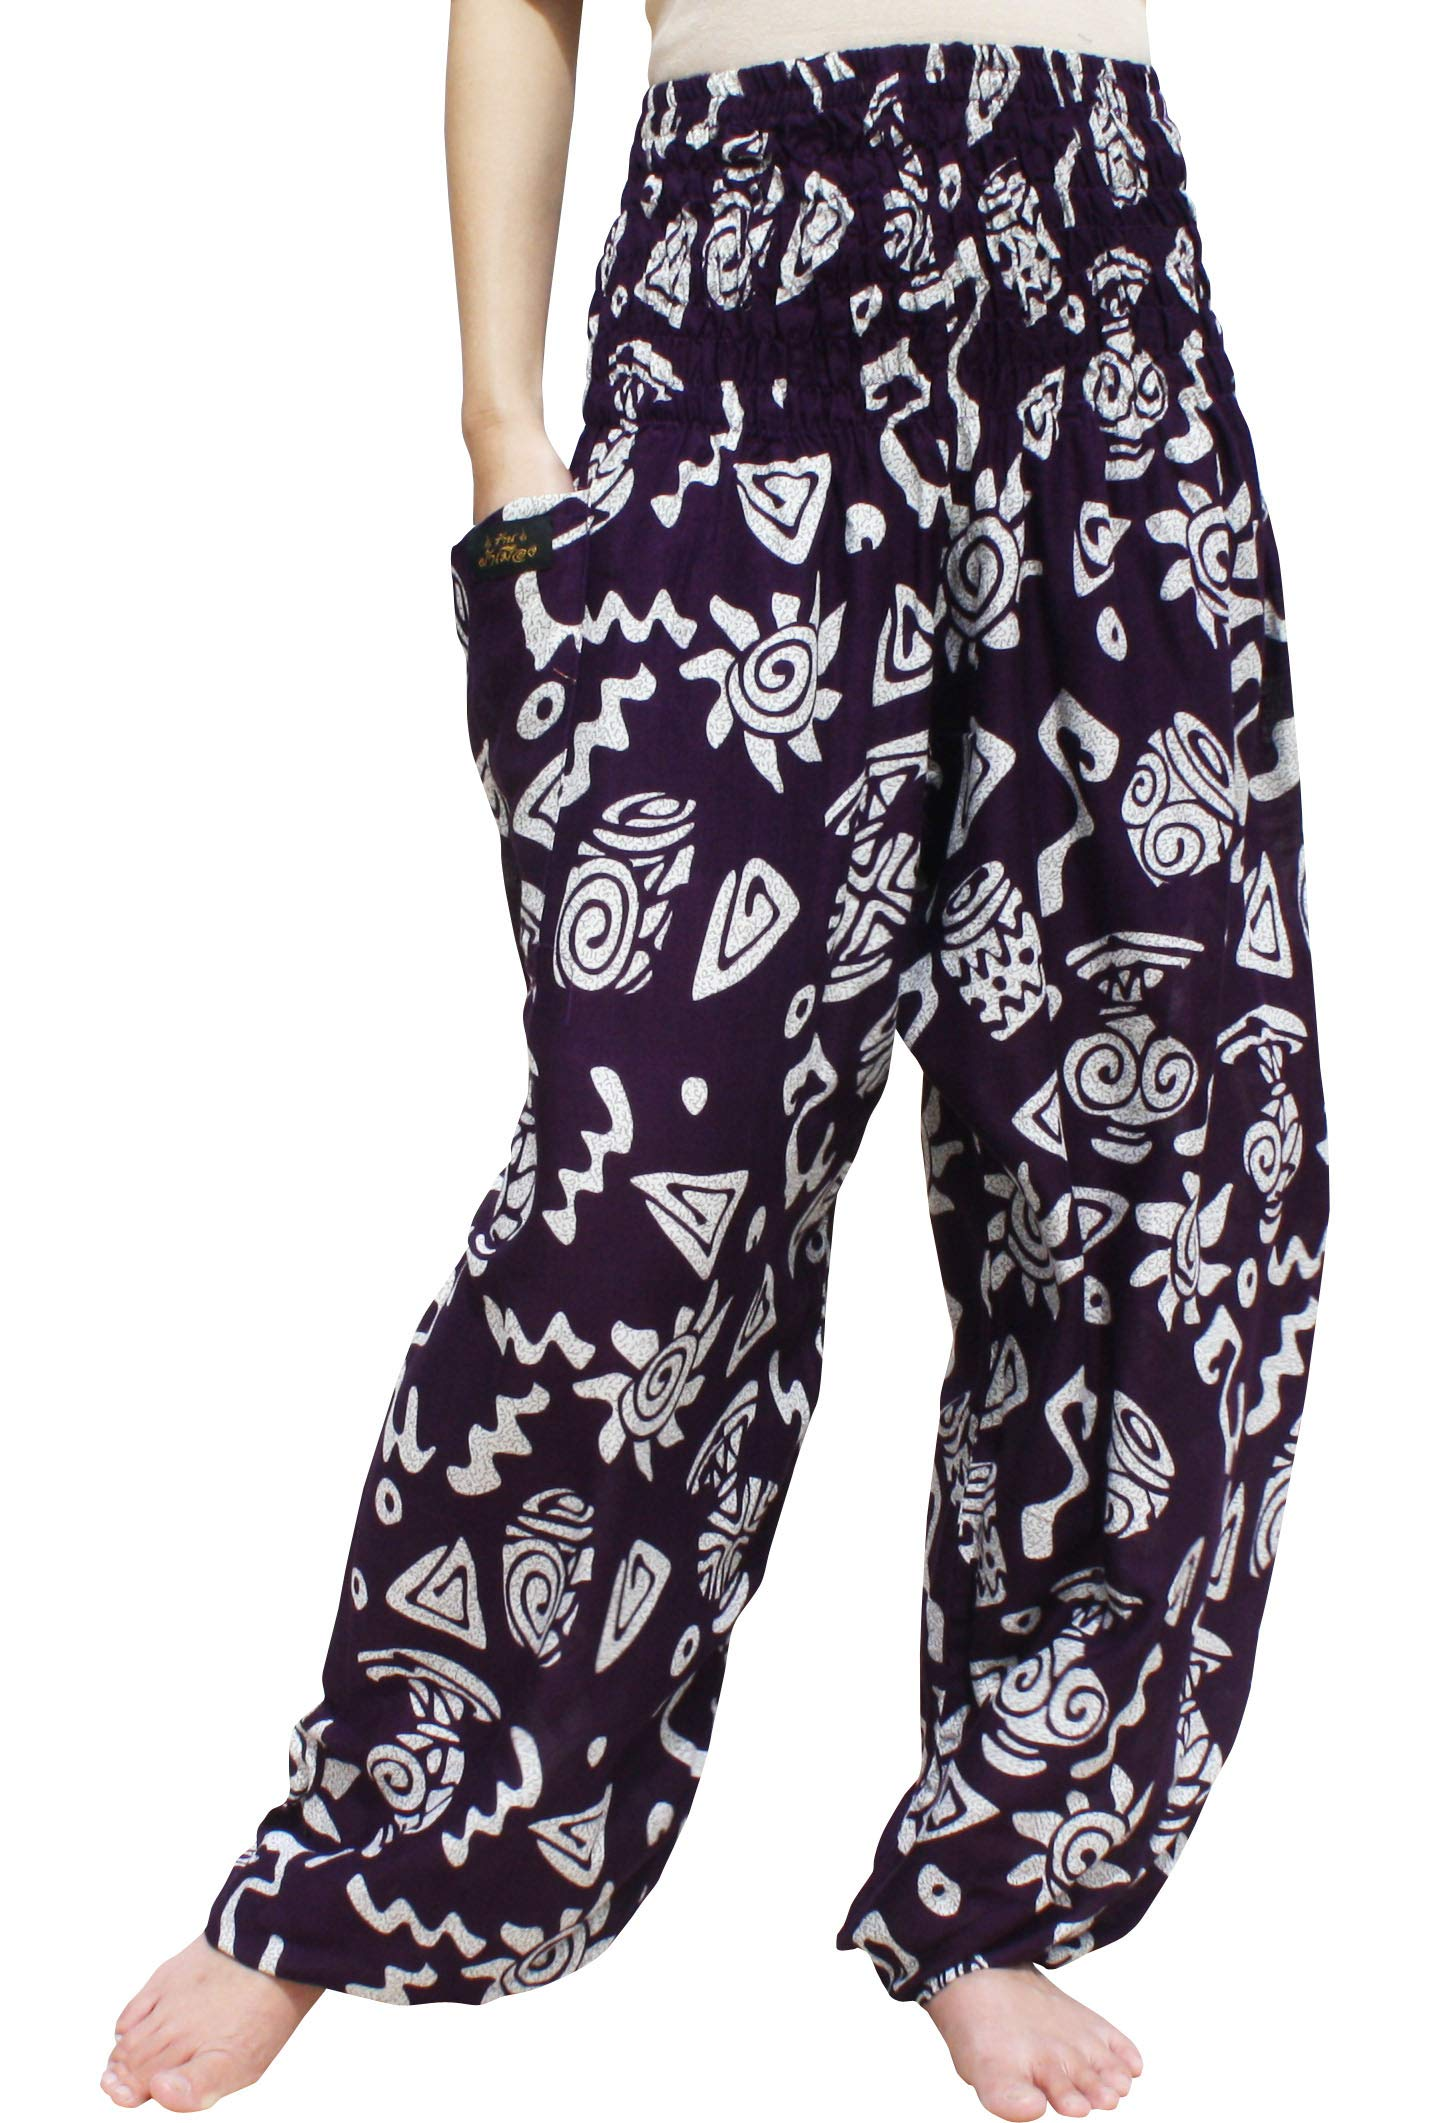 RaanPahMuang Brand Smock Waist Rayon Mixed Art Harem Baggy Aladdin Pants, Large, Geometric Art - Dark Purple by RaanPahMuang